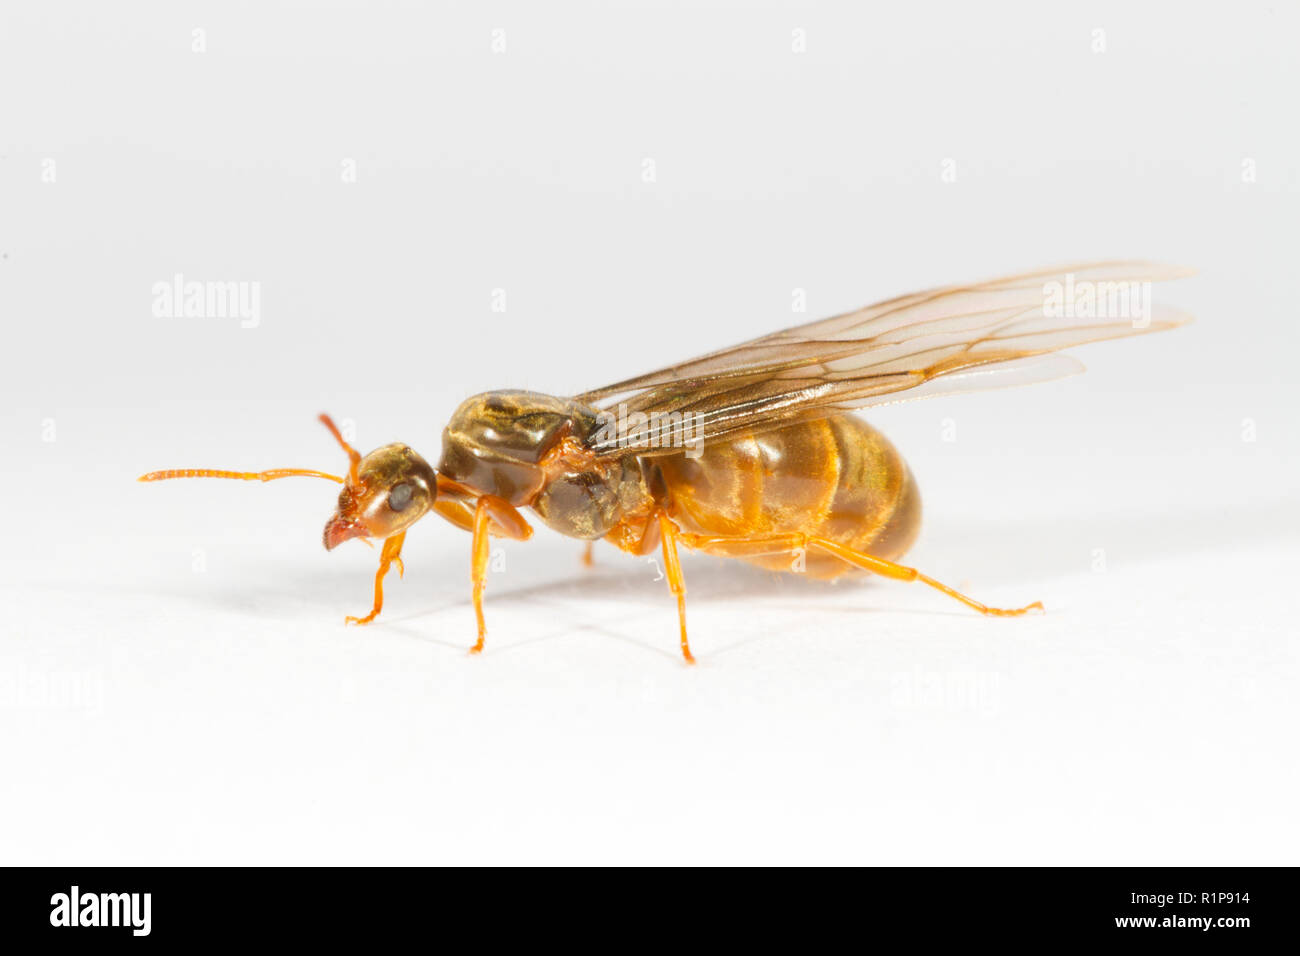 Yellow Meadow Ant Lasius Flavus Winged Queen Photographed On A White Background Powys Wales August Stock Photo Alamy